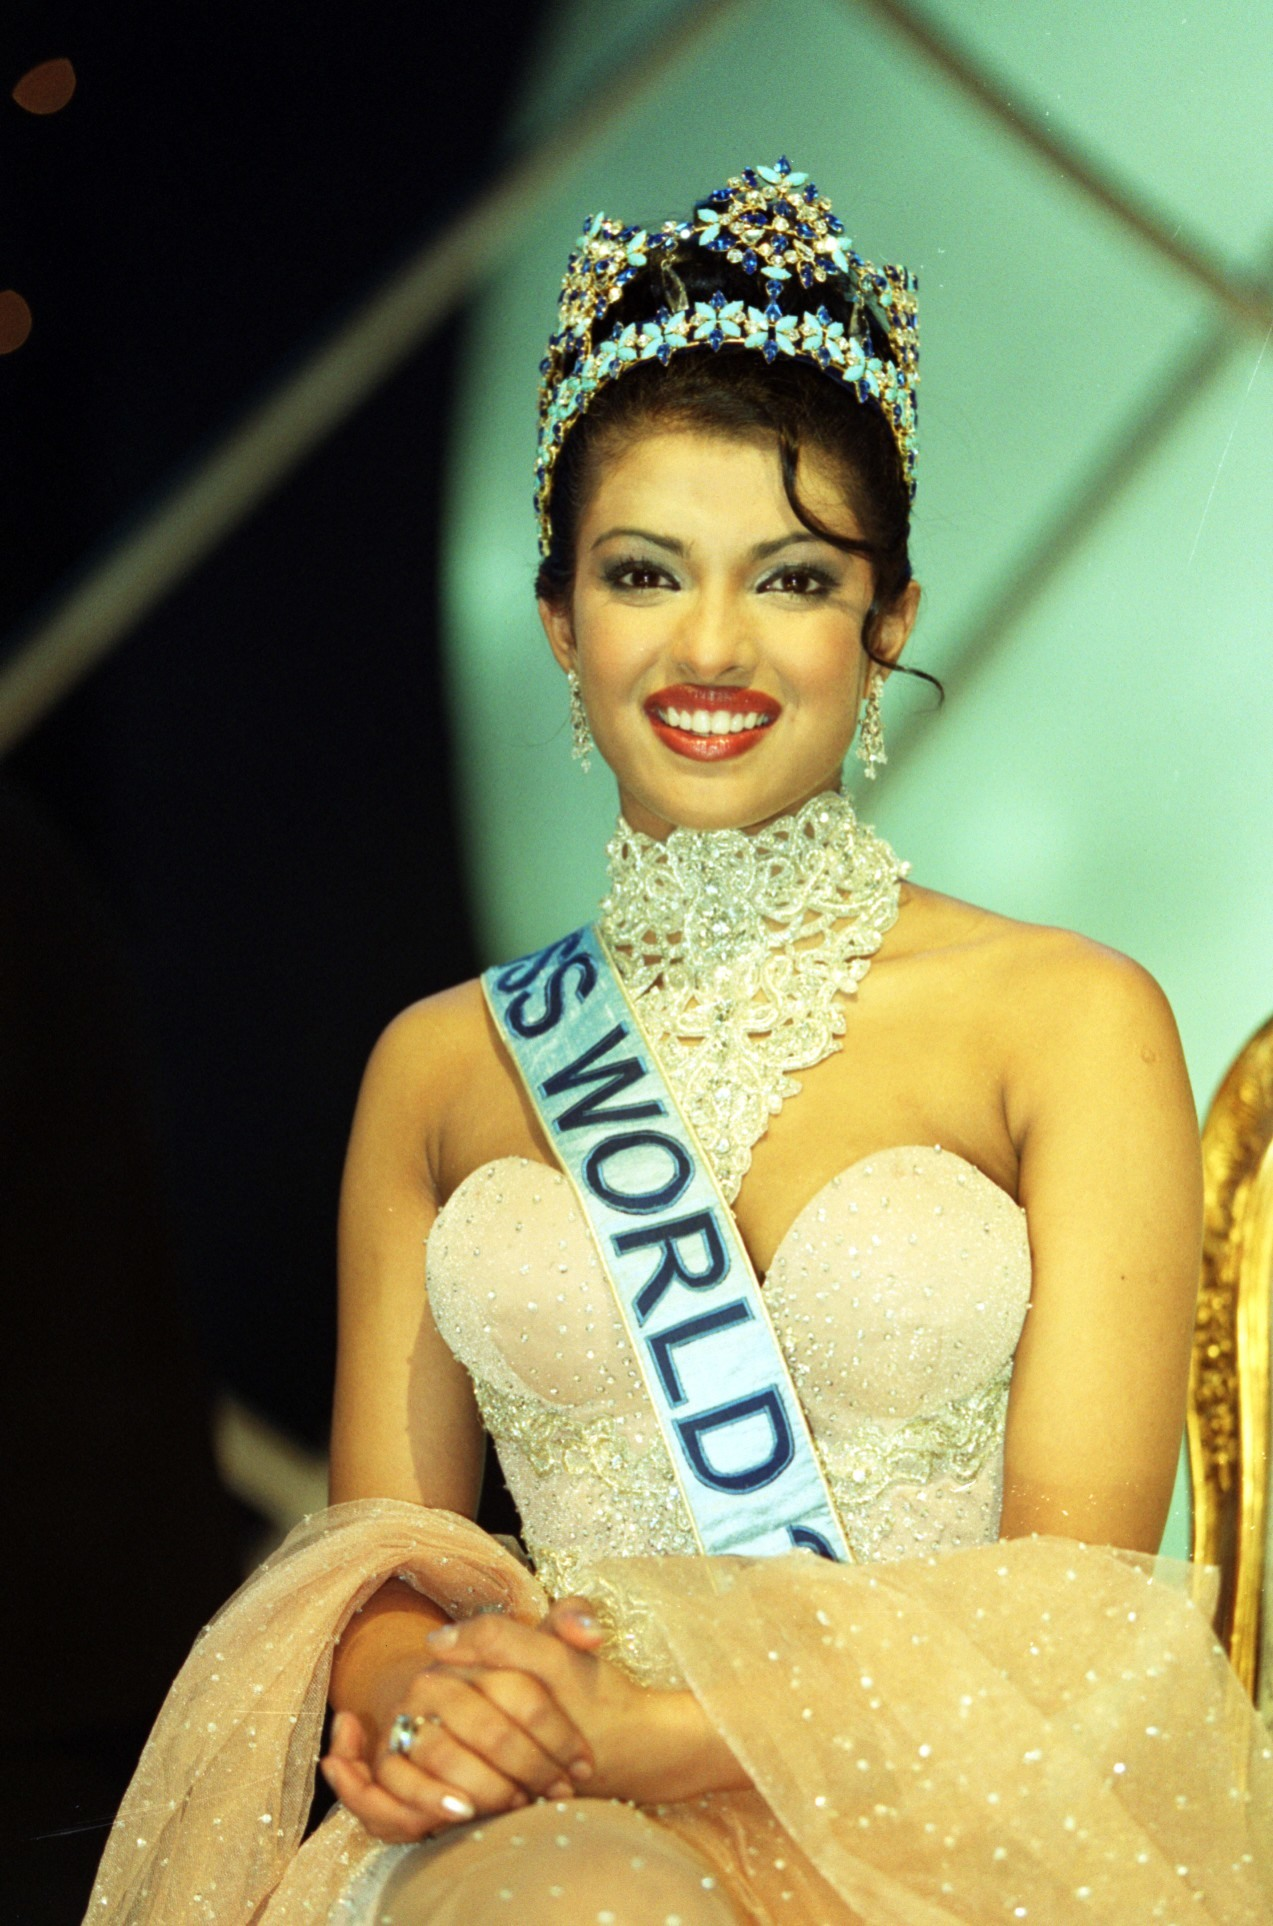 Miss World 2000 winner, Miss India, Priyanka Chopra, 18, during the Miss World contest at The Millennium Dome in Greenwich.